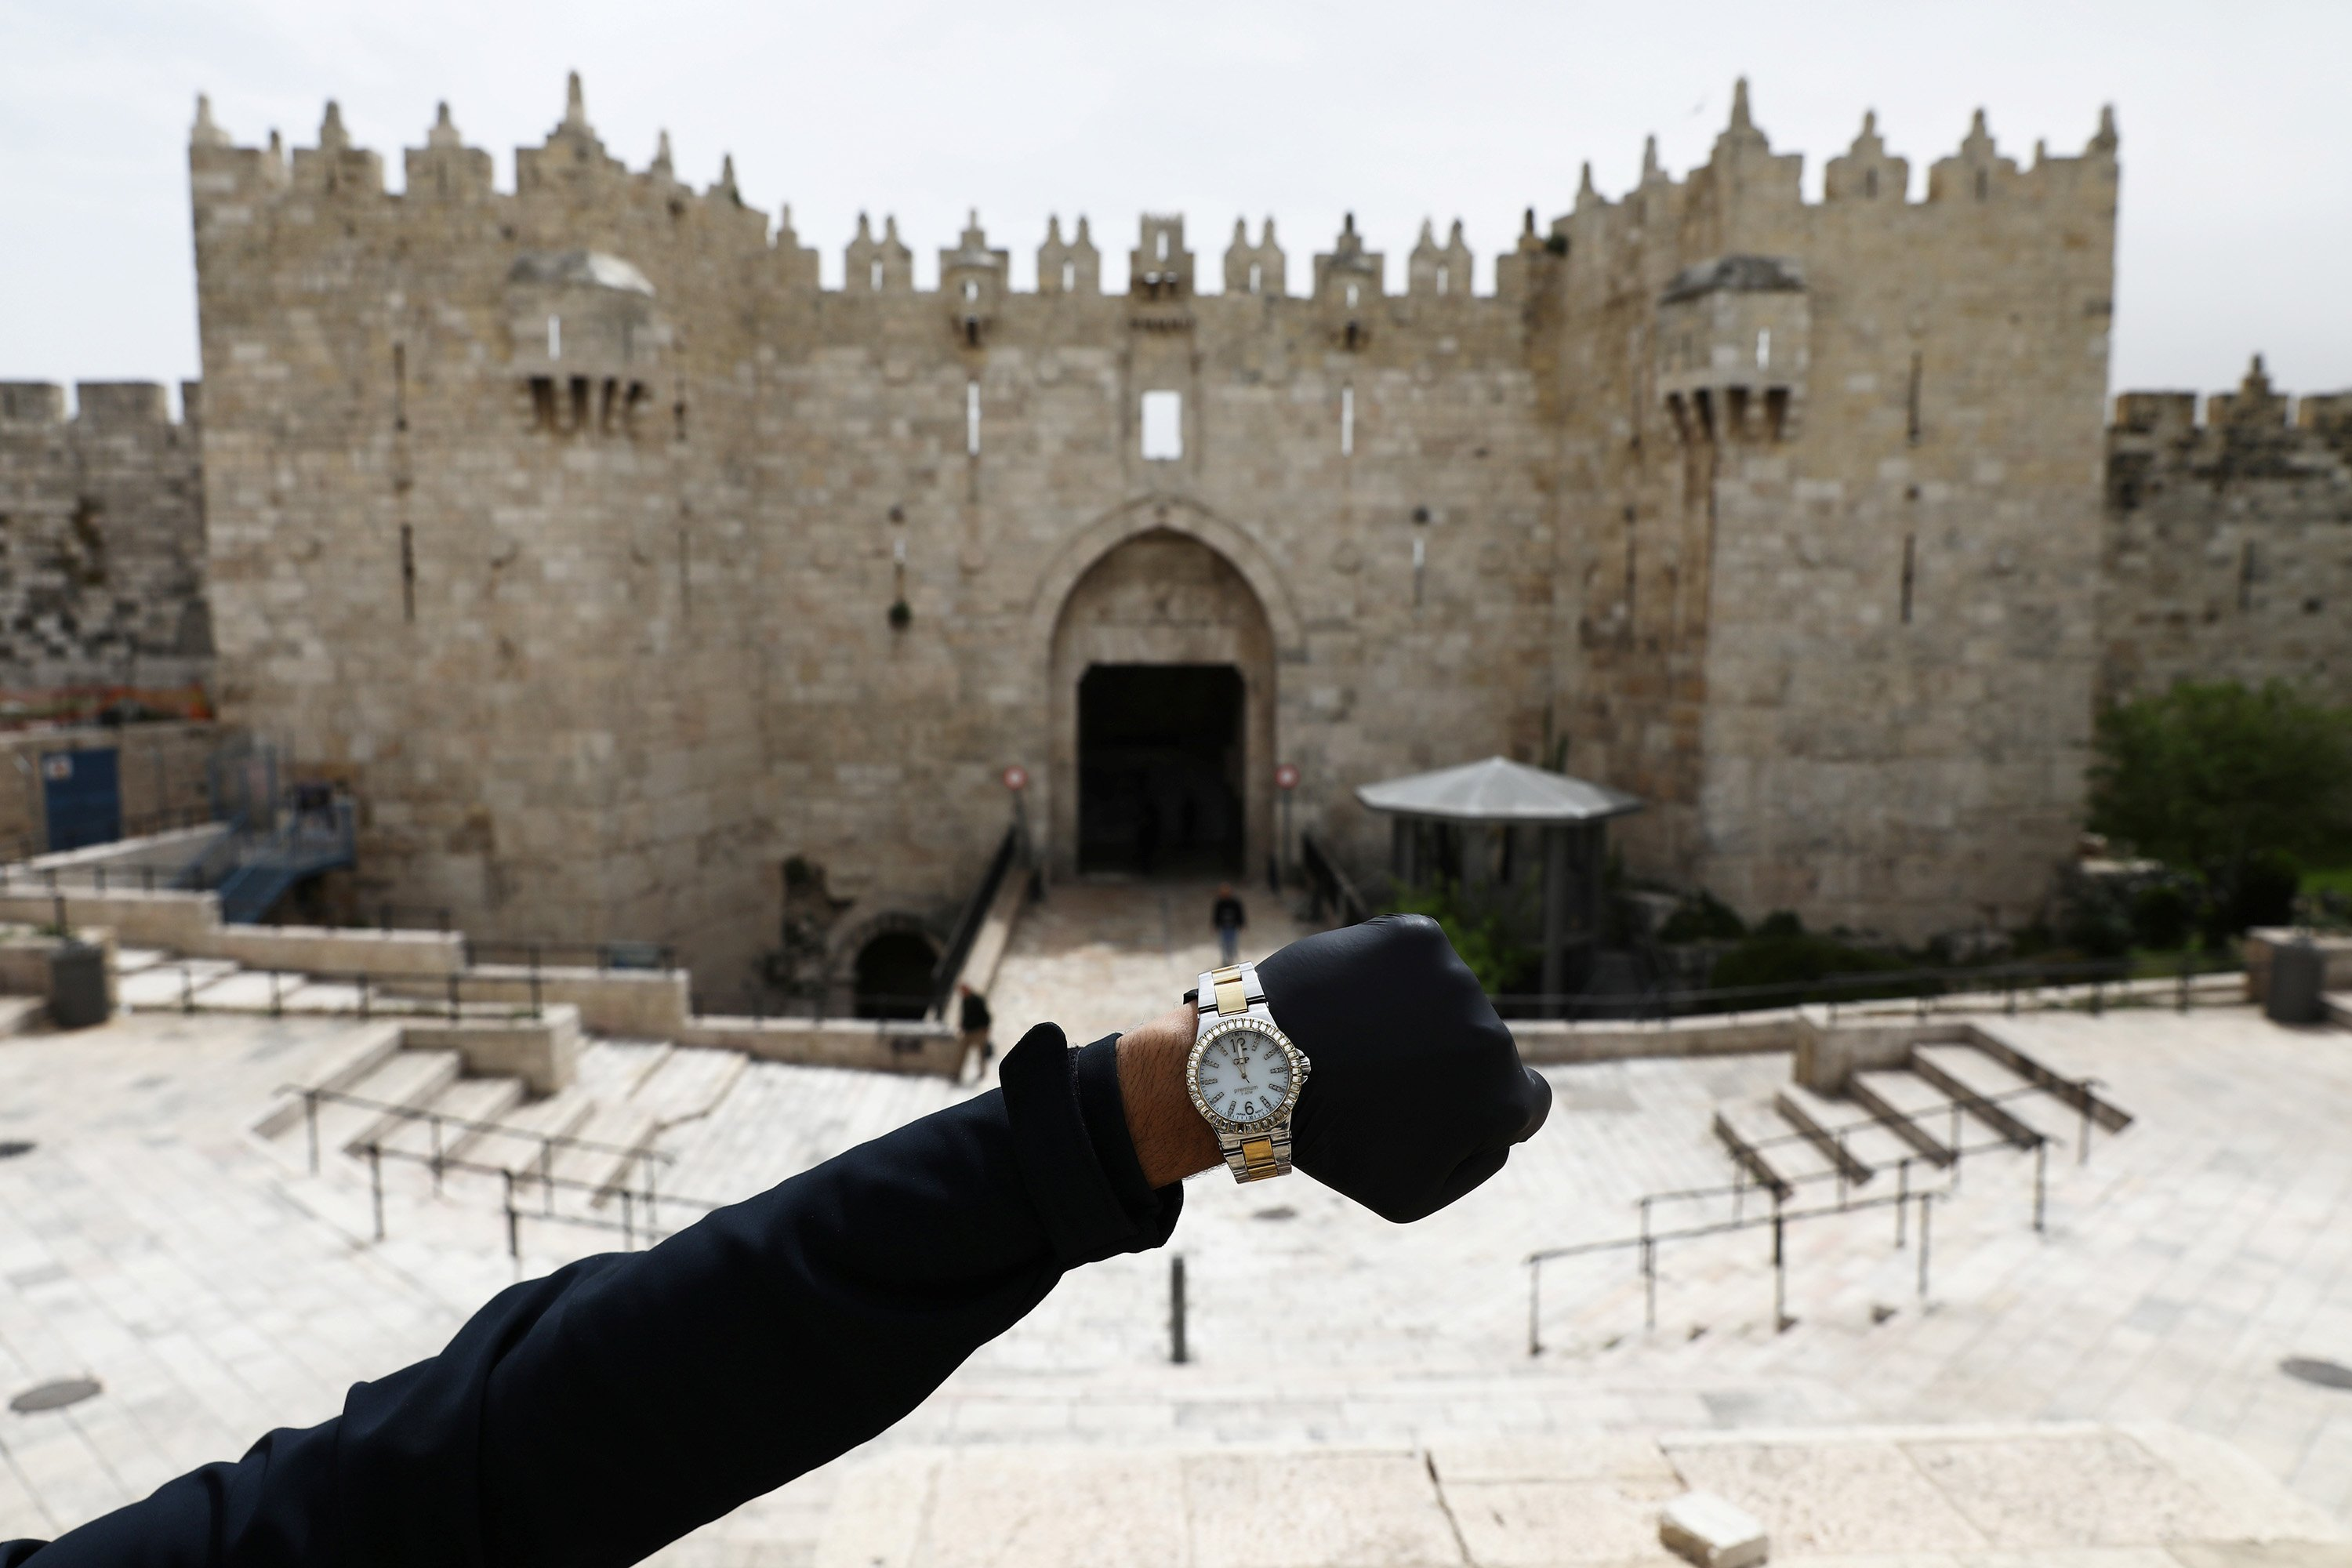 A watch showing the time at noon in front of Damascus Gate, as it is in front of an empty staircase at Jerusalem's Old City, March 31, 2020. (Reuters Photo)